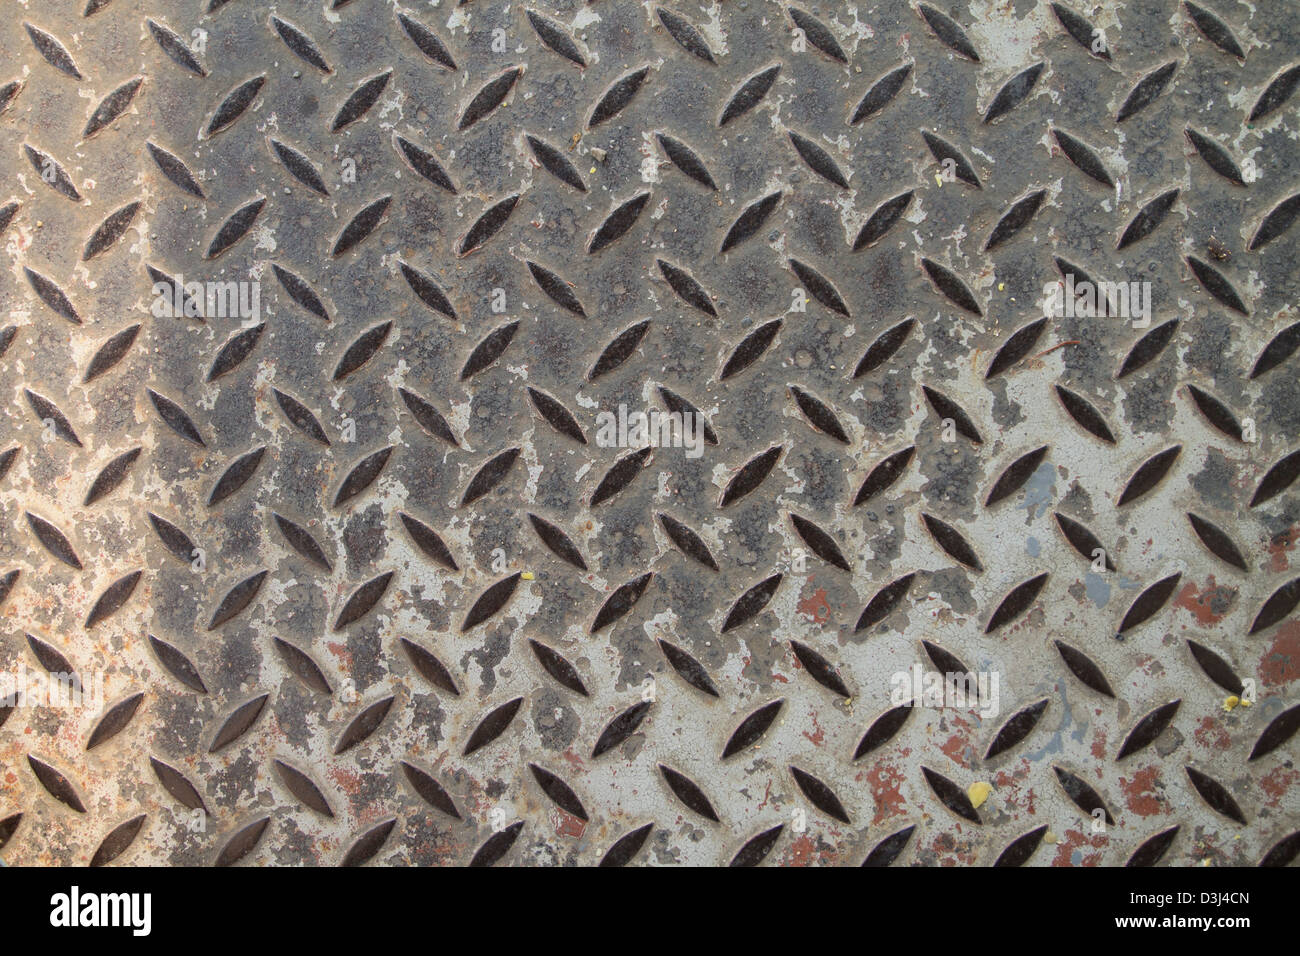 Checker Plate Floor Surface Texture Steel Grip Metal